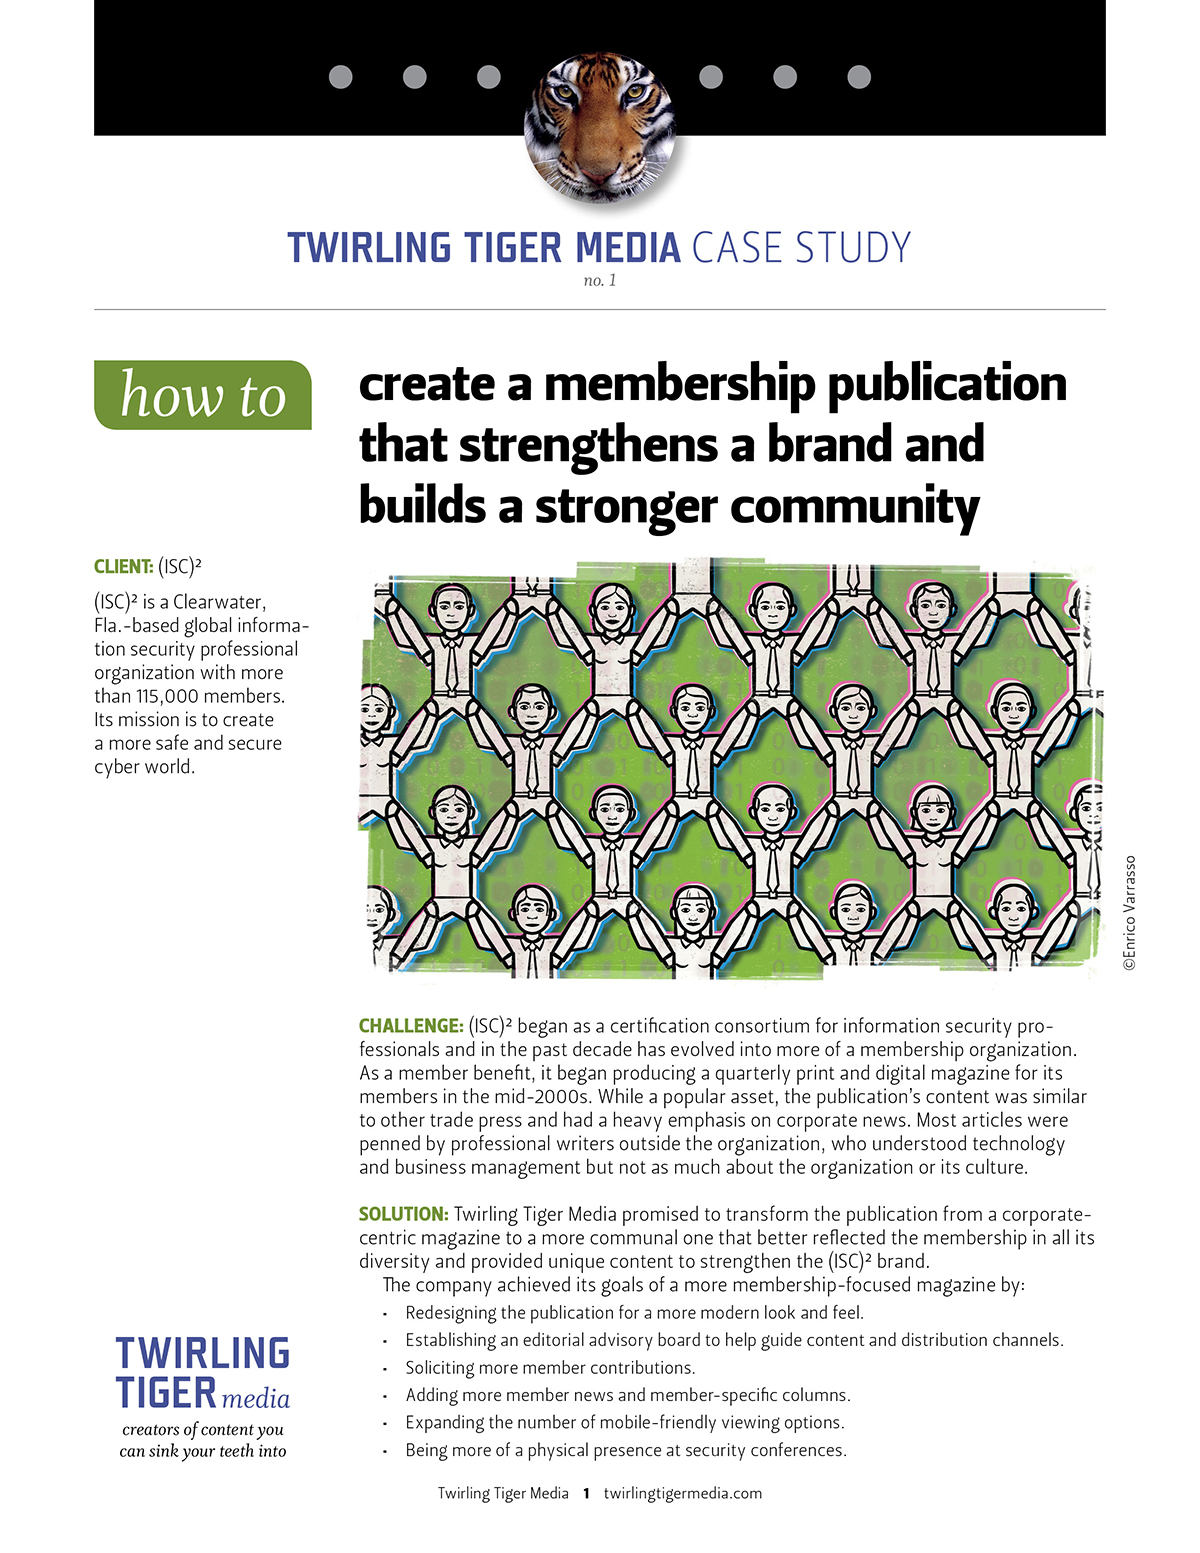 Case Study: Building Your Brand Through a Publication